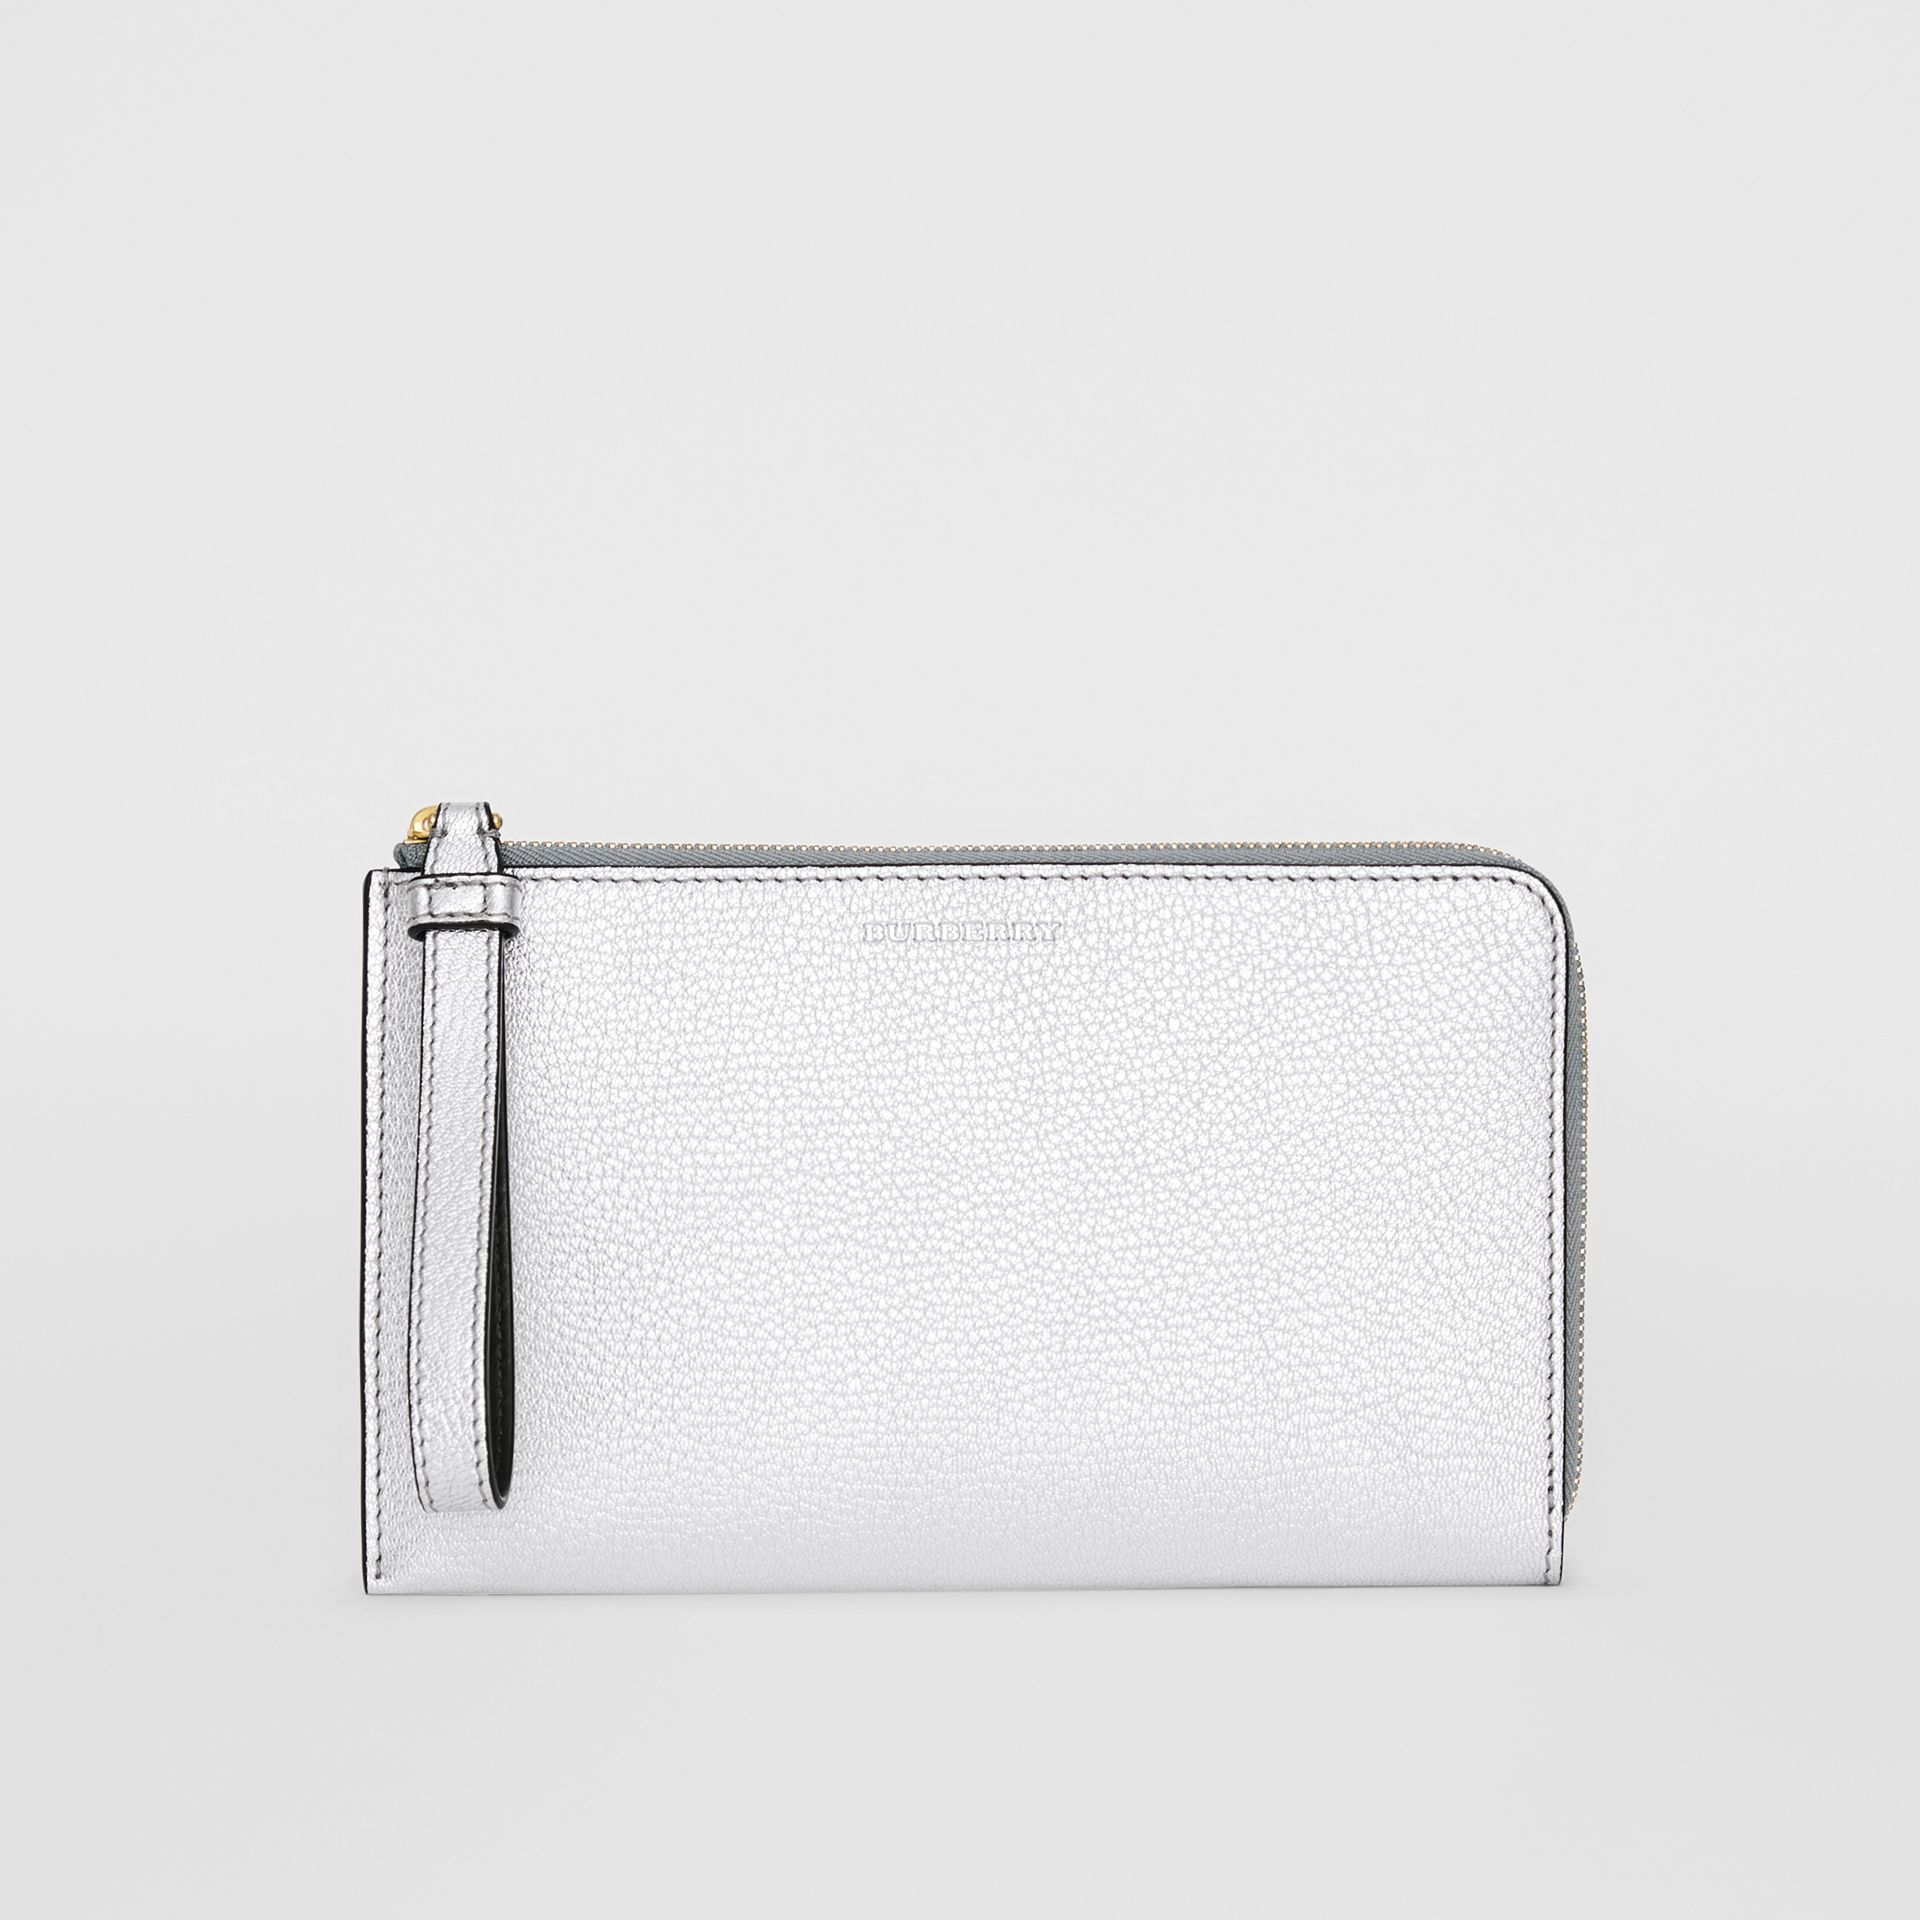 Two-tone Metallic Leather Travel Wallet in Silver - Women | Burberry Australia - gallery image 0